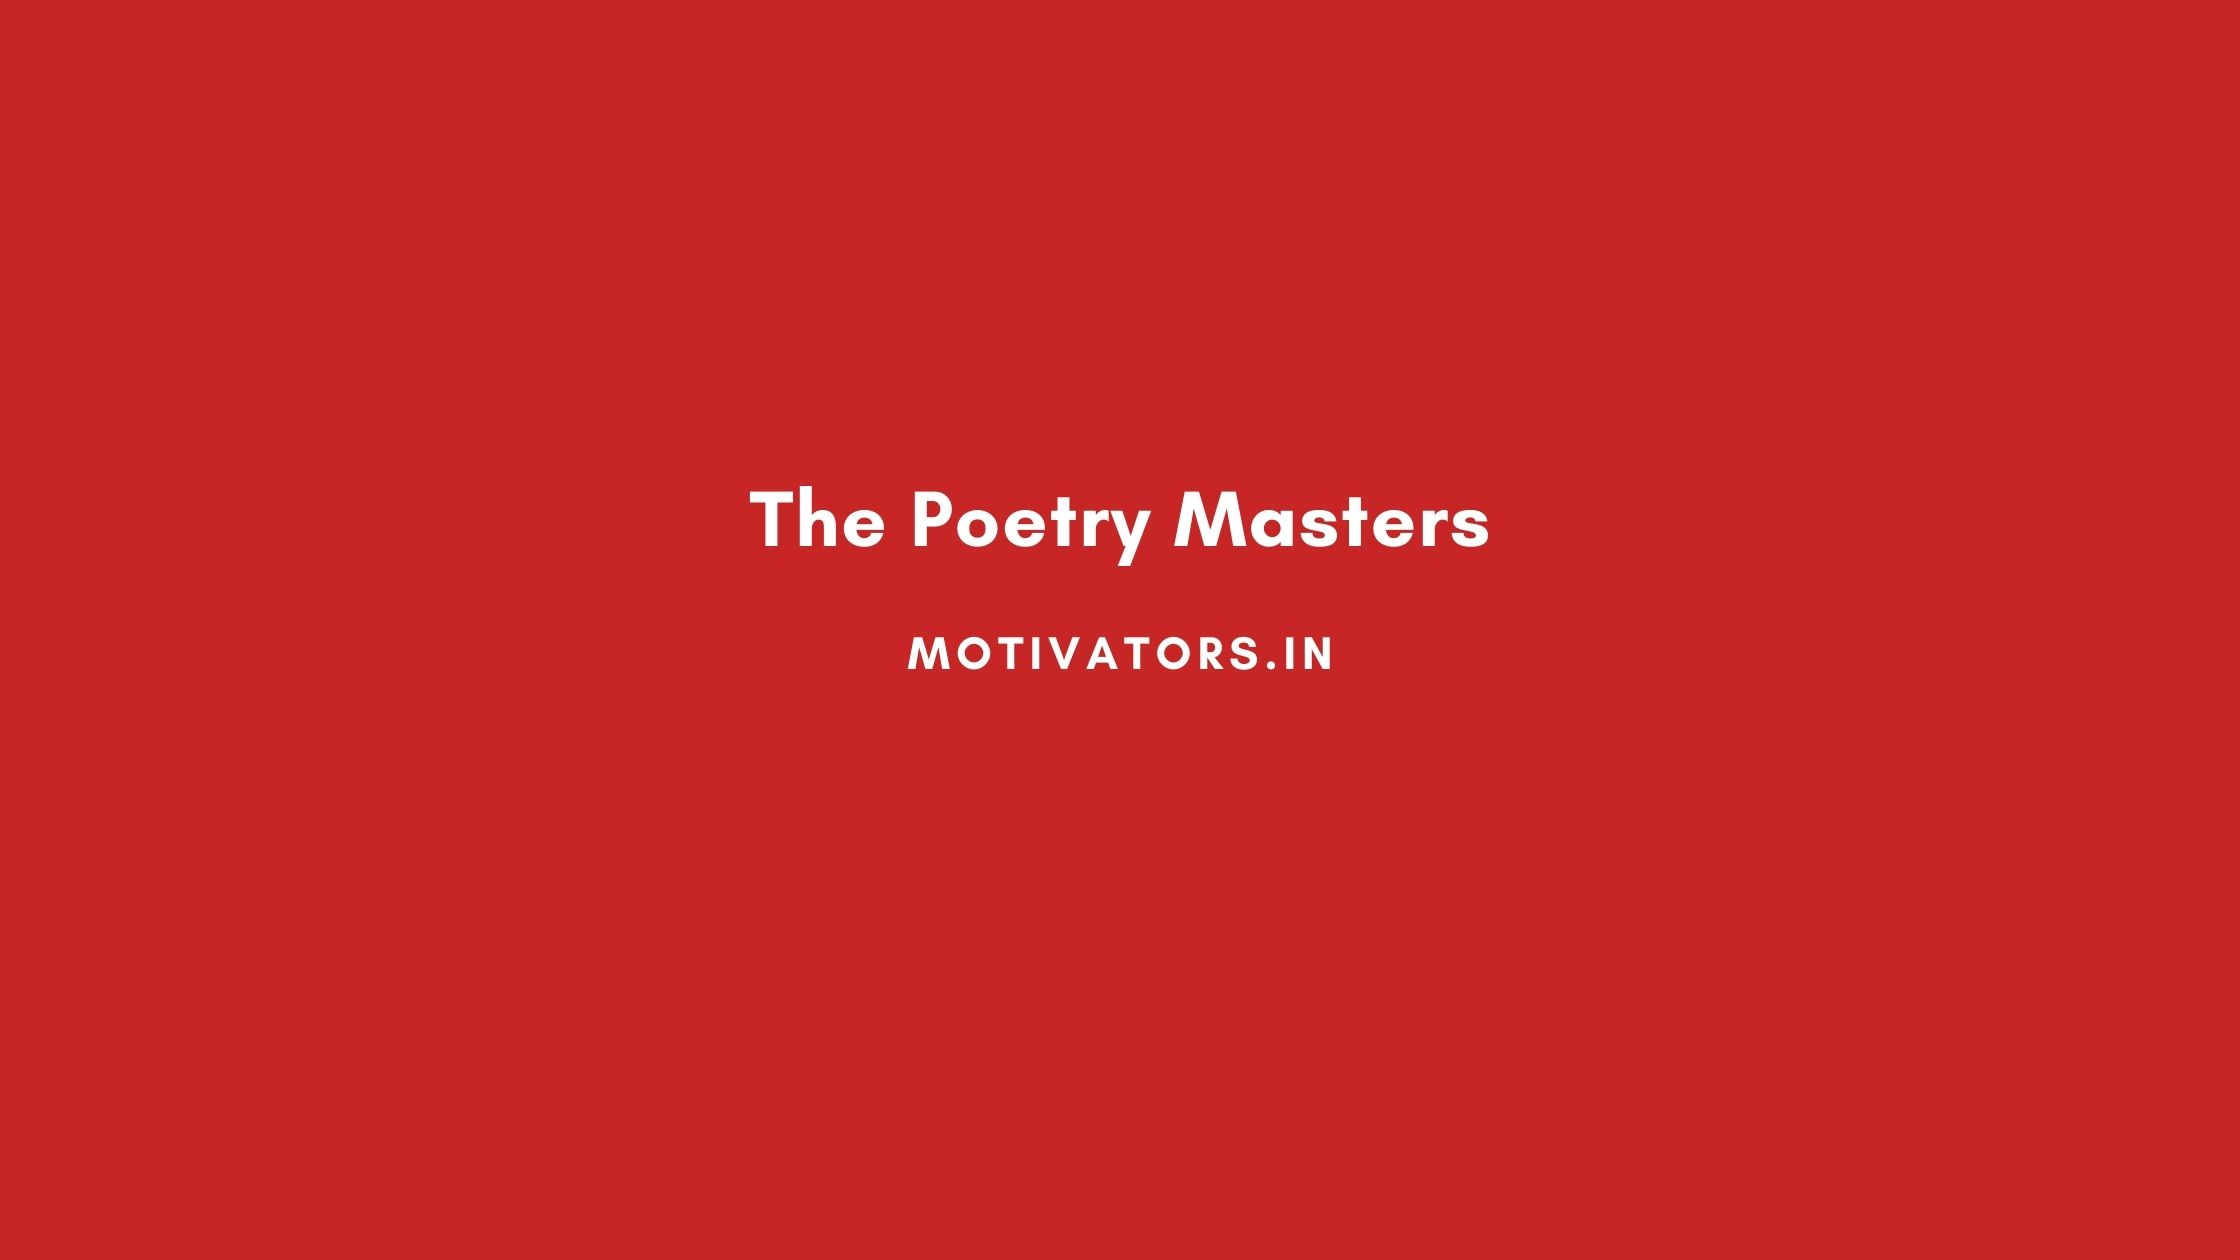 The Poetry Masters